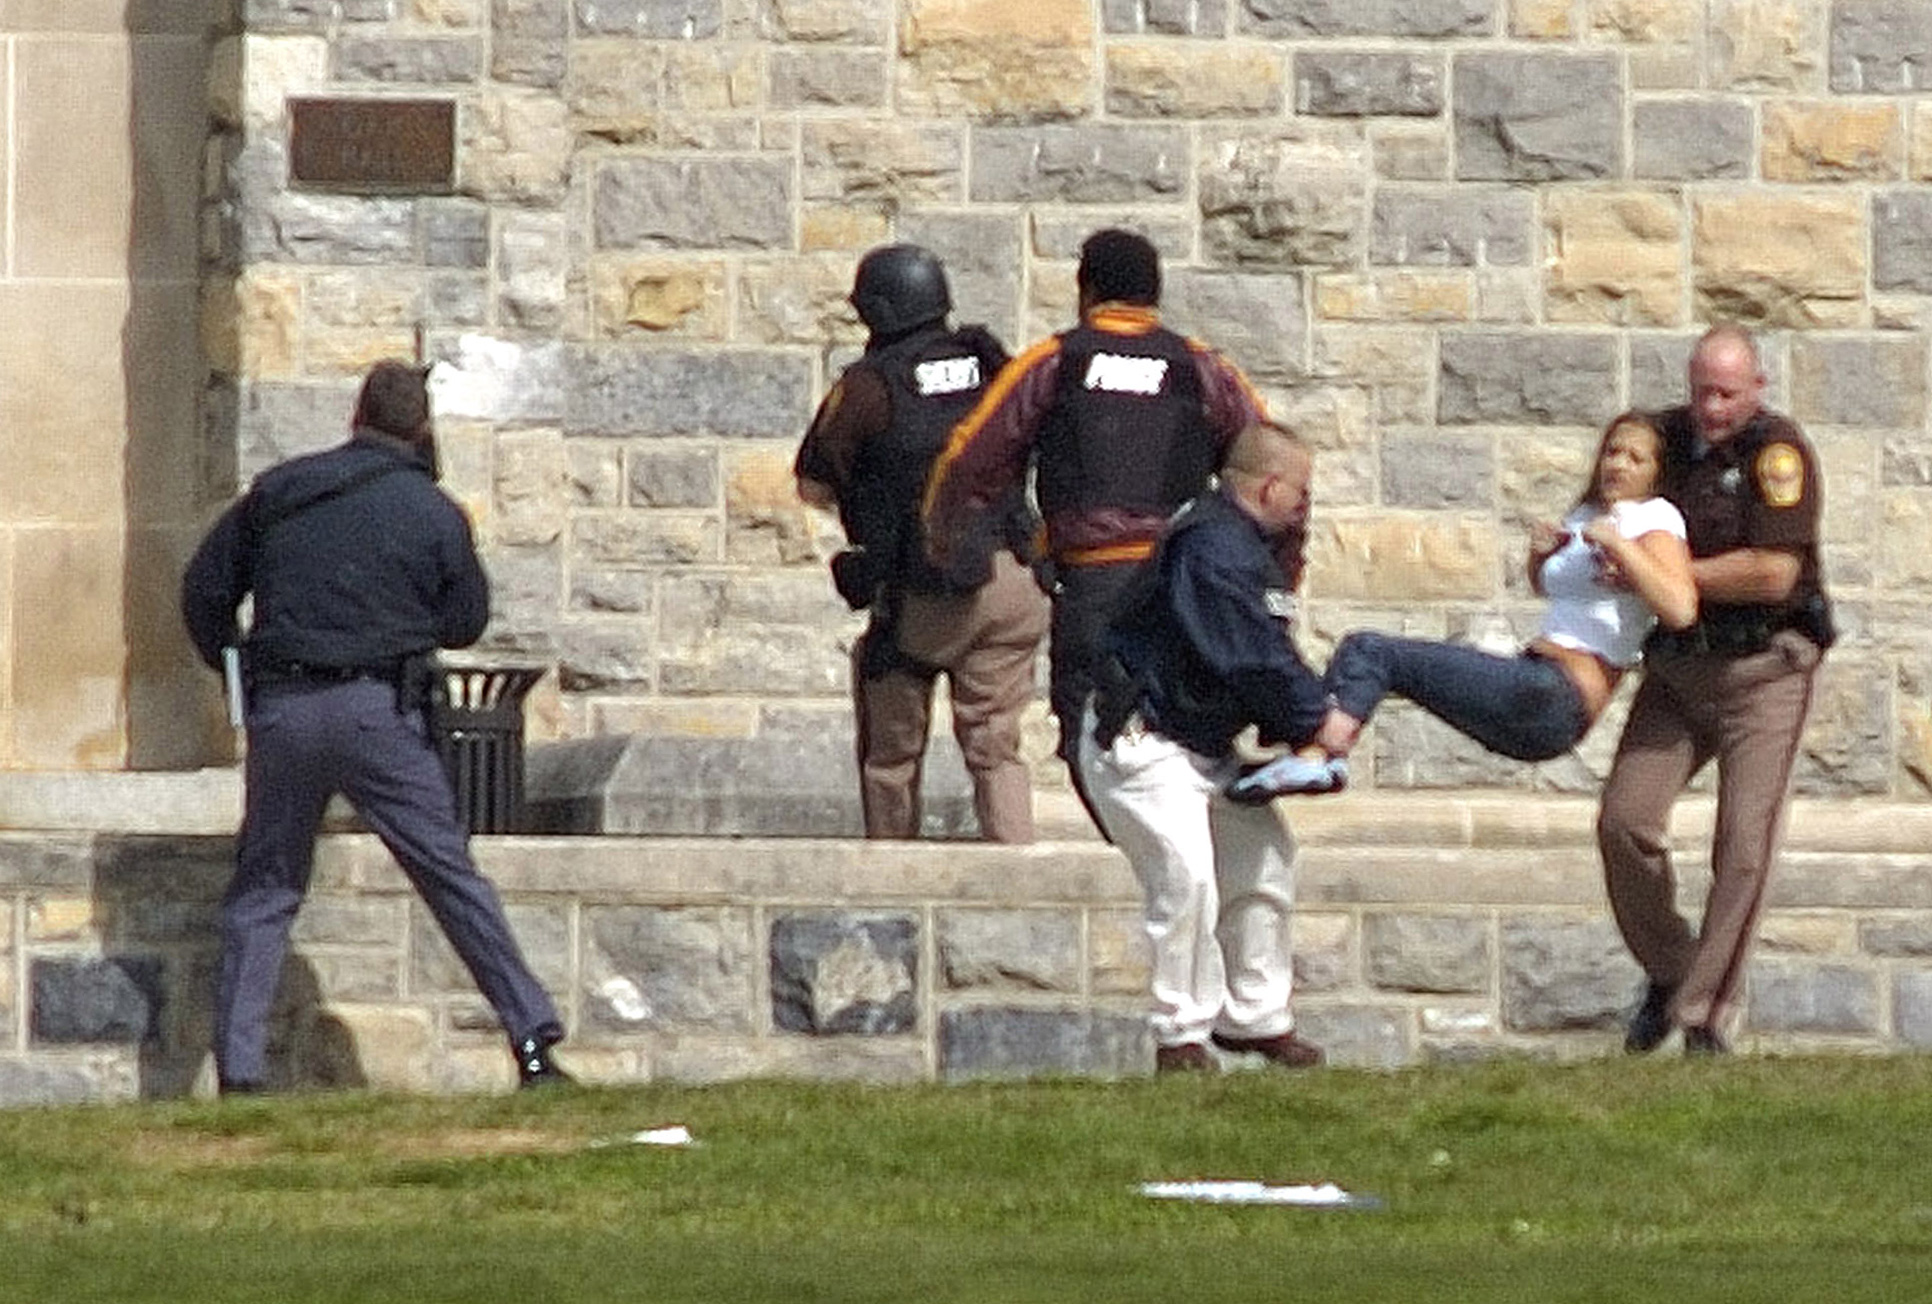 virginia massacre The virginia tech massacre, which claimed 33 lives on april 16, 2007, was the nation's deadliest campus shooting, but it was far from the last.